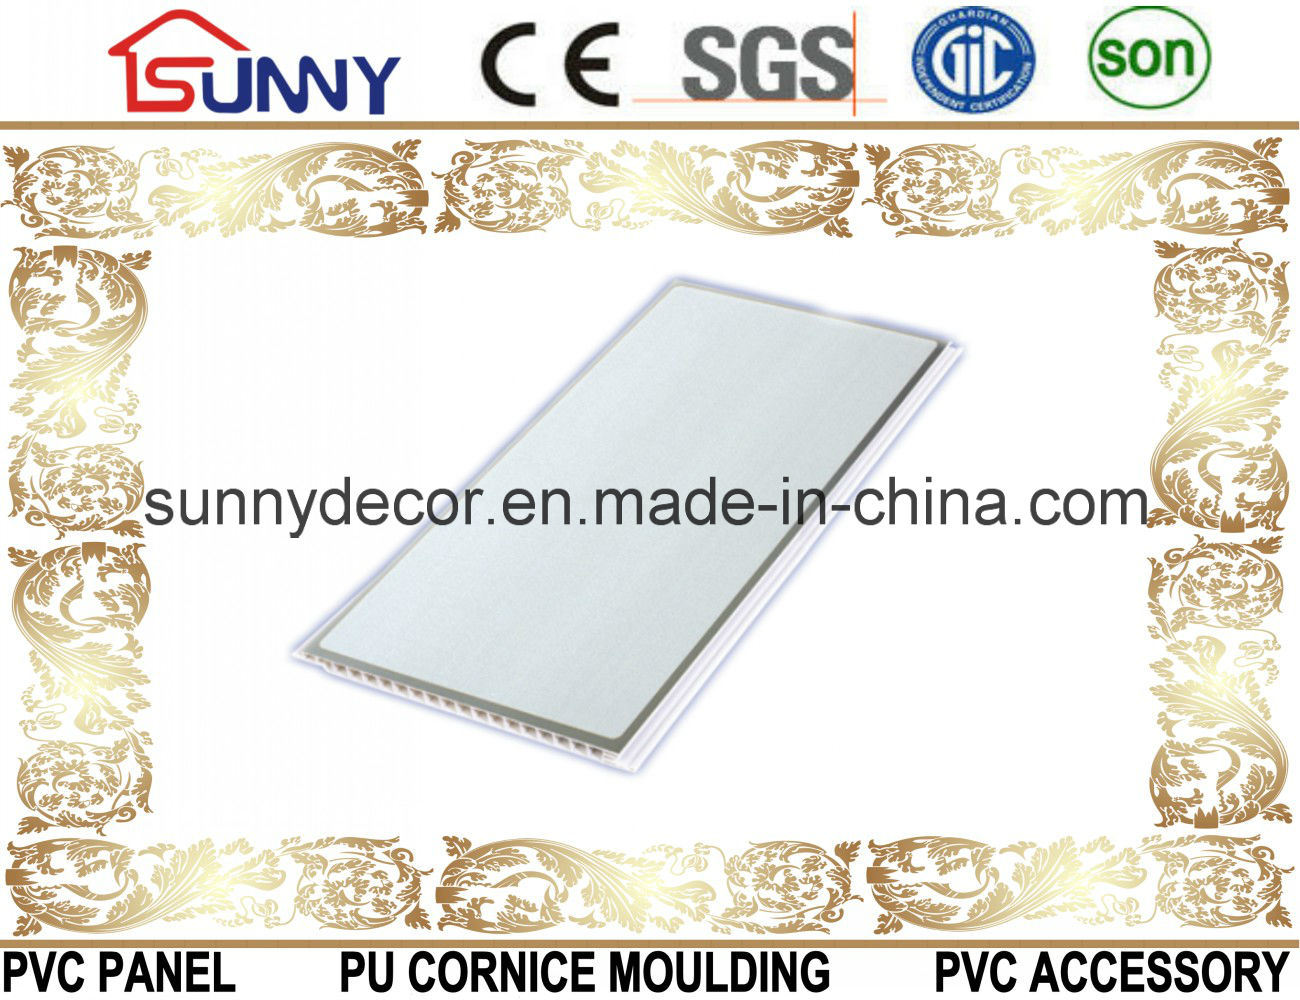 Building Materials Waterproof PVC Board-PVC Ceiling-Wall Panel for Decoration